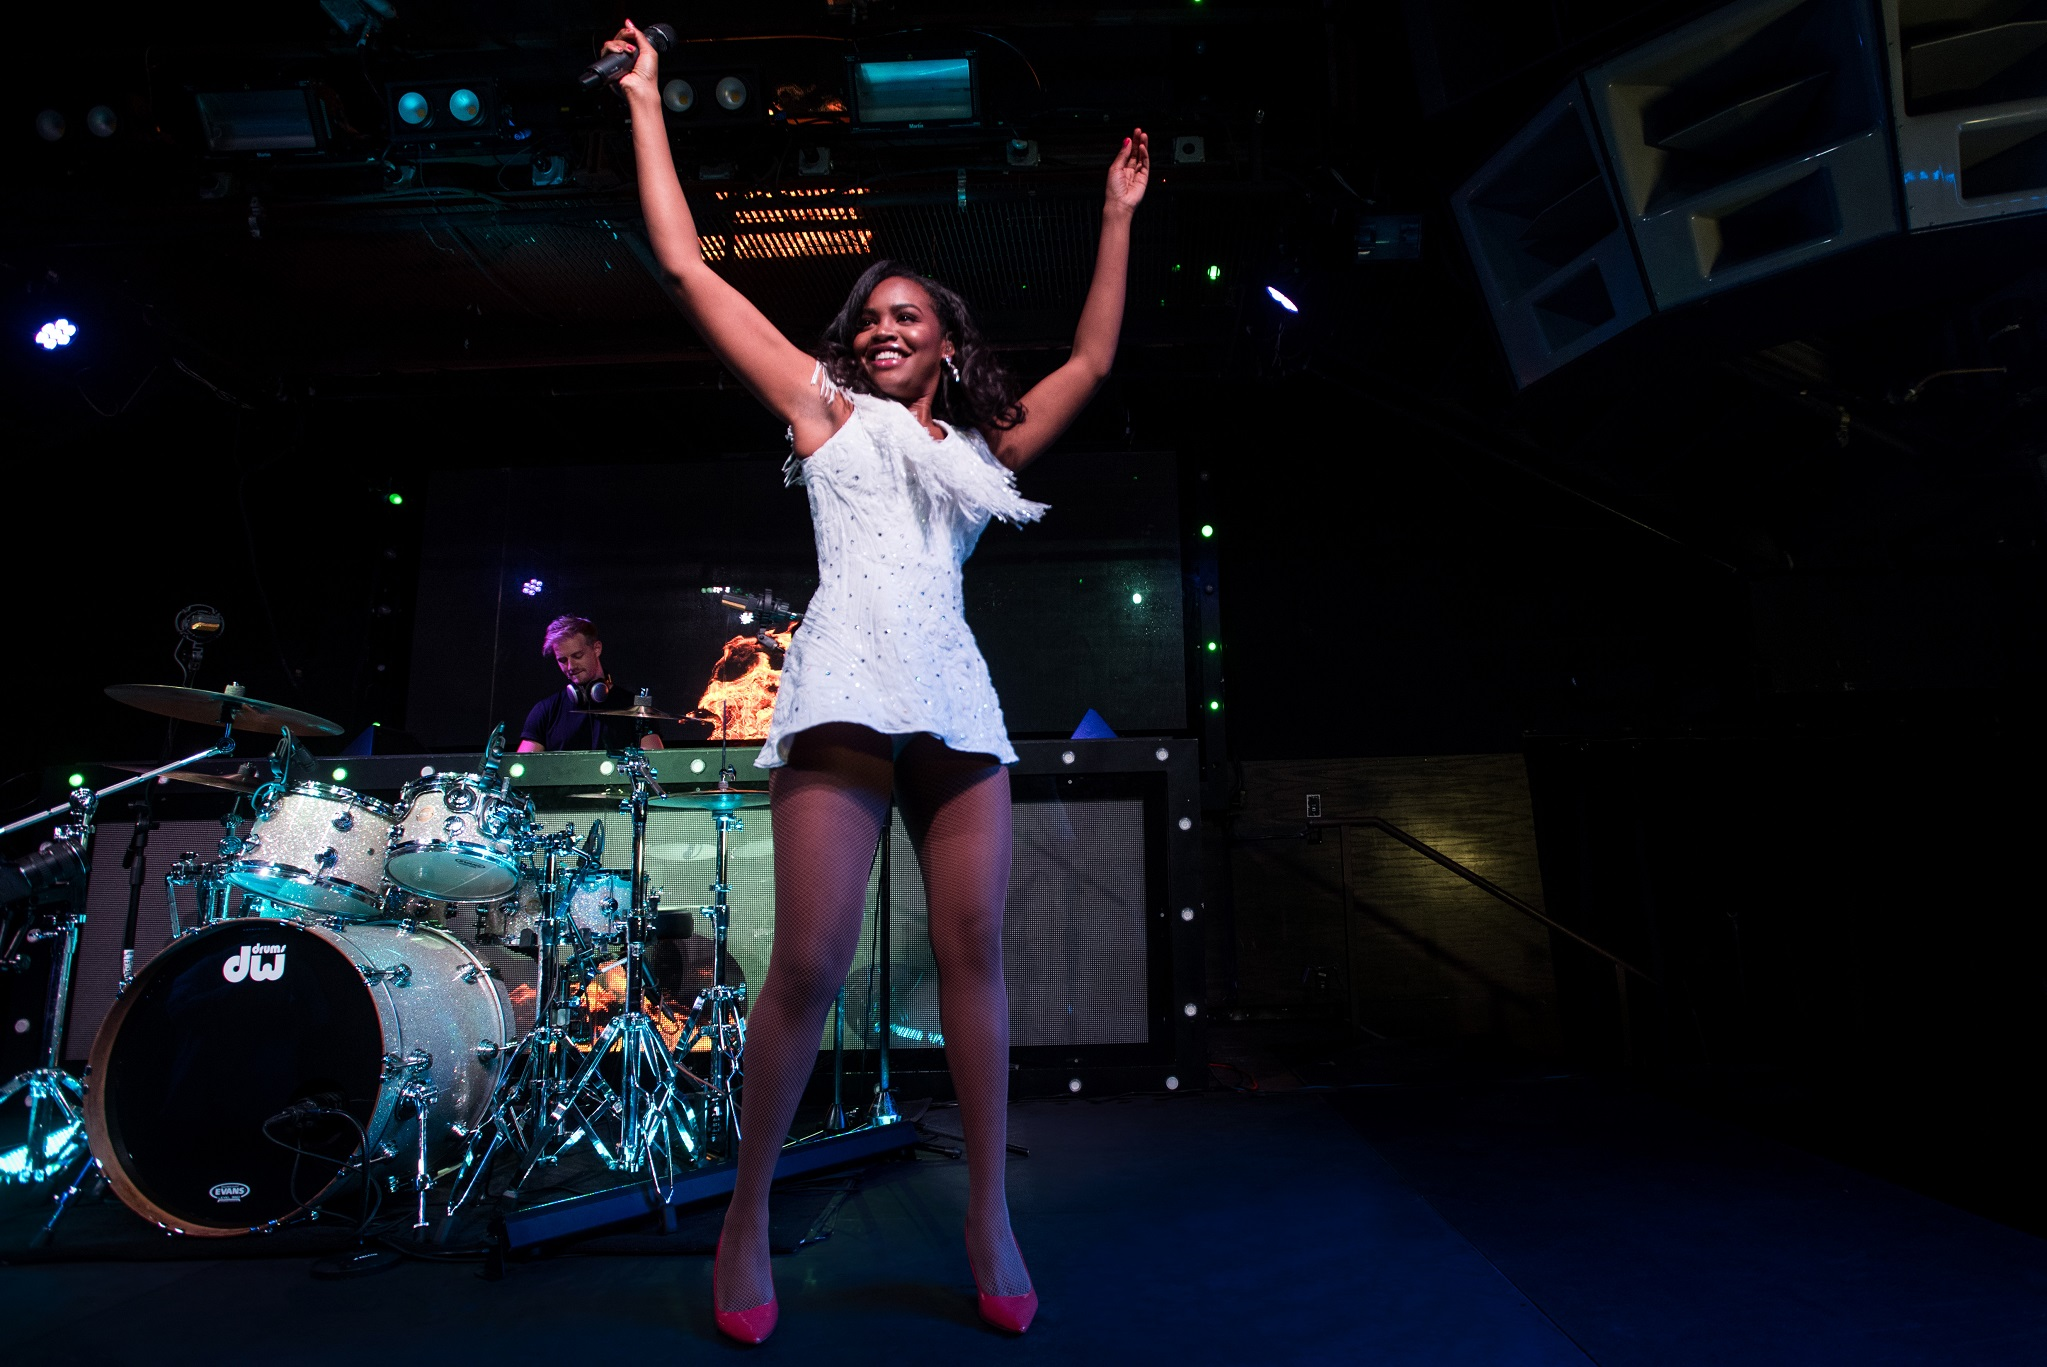 Glorious-Singer-Livetronica Drummer-Producer-Songwriter-Marquee-Nightclub-Video-New York-NY-23lr.jpg